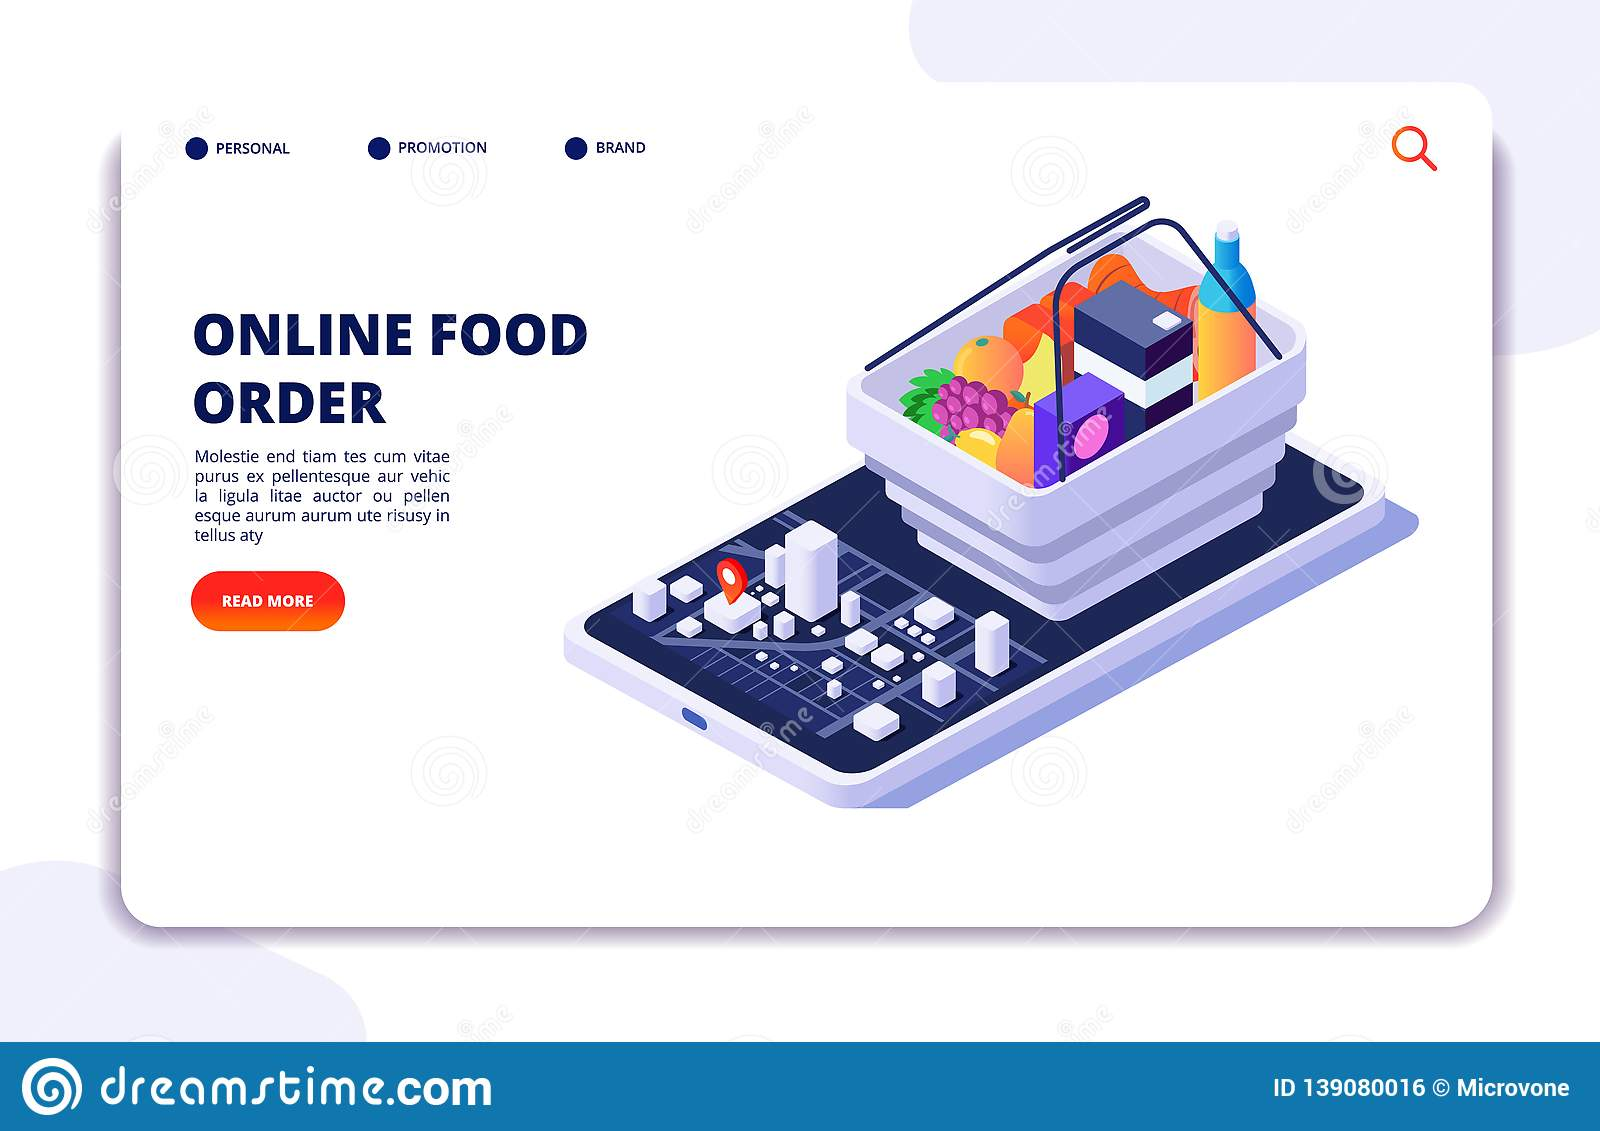 Grocery food delivery isometric concept. Online order with mobile phone app. Internet food restaurant vector banner or